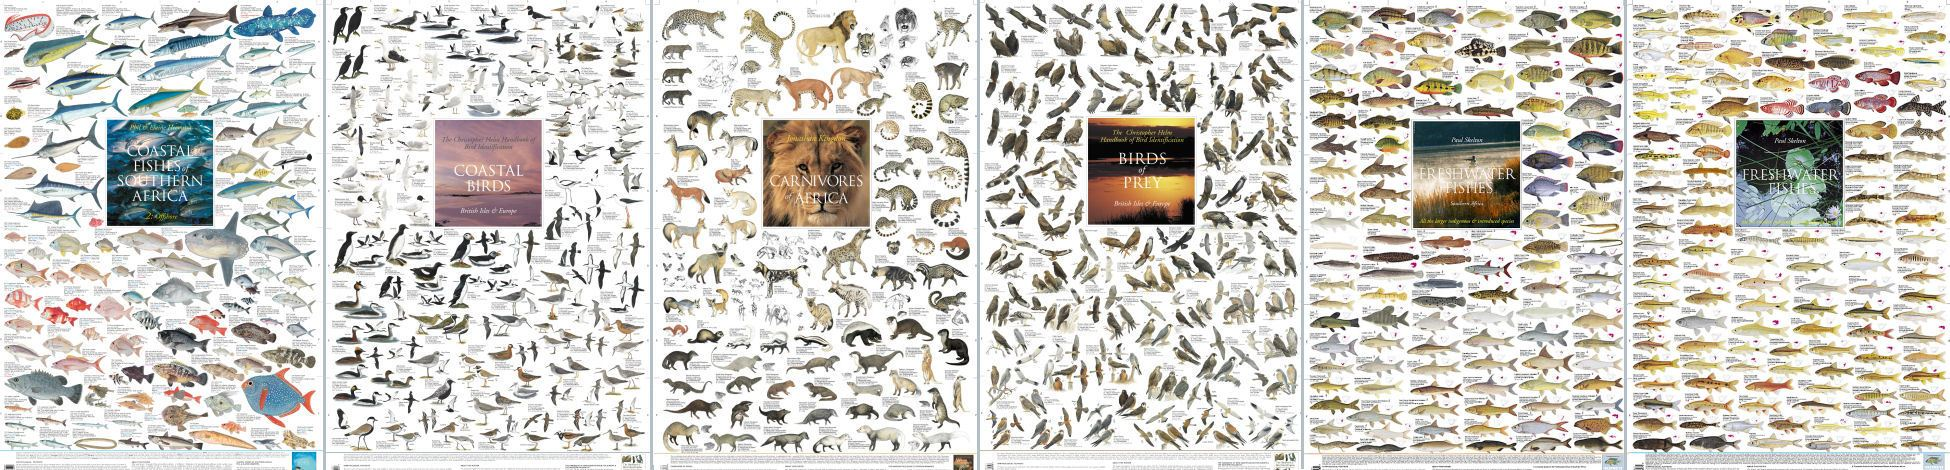 Marine Life Posters